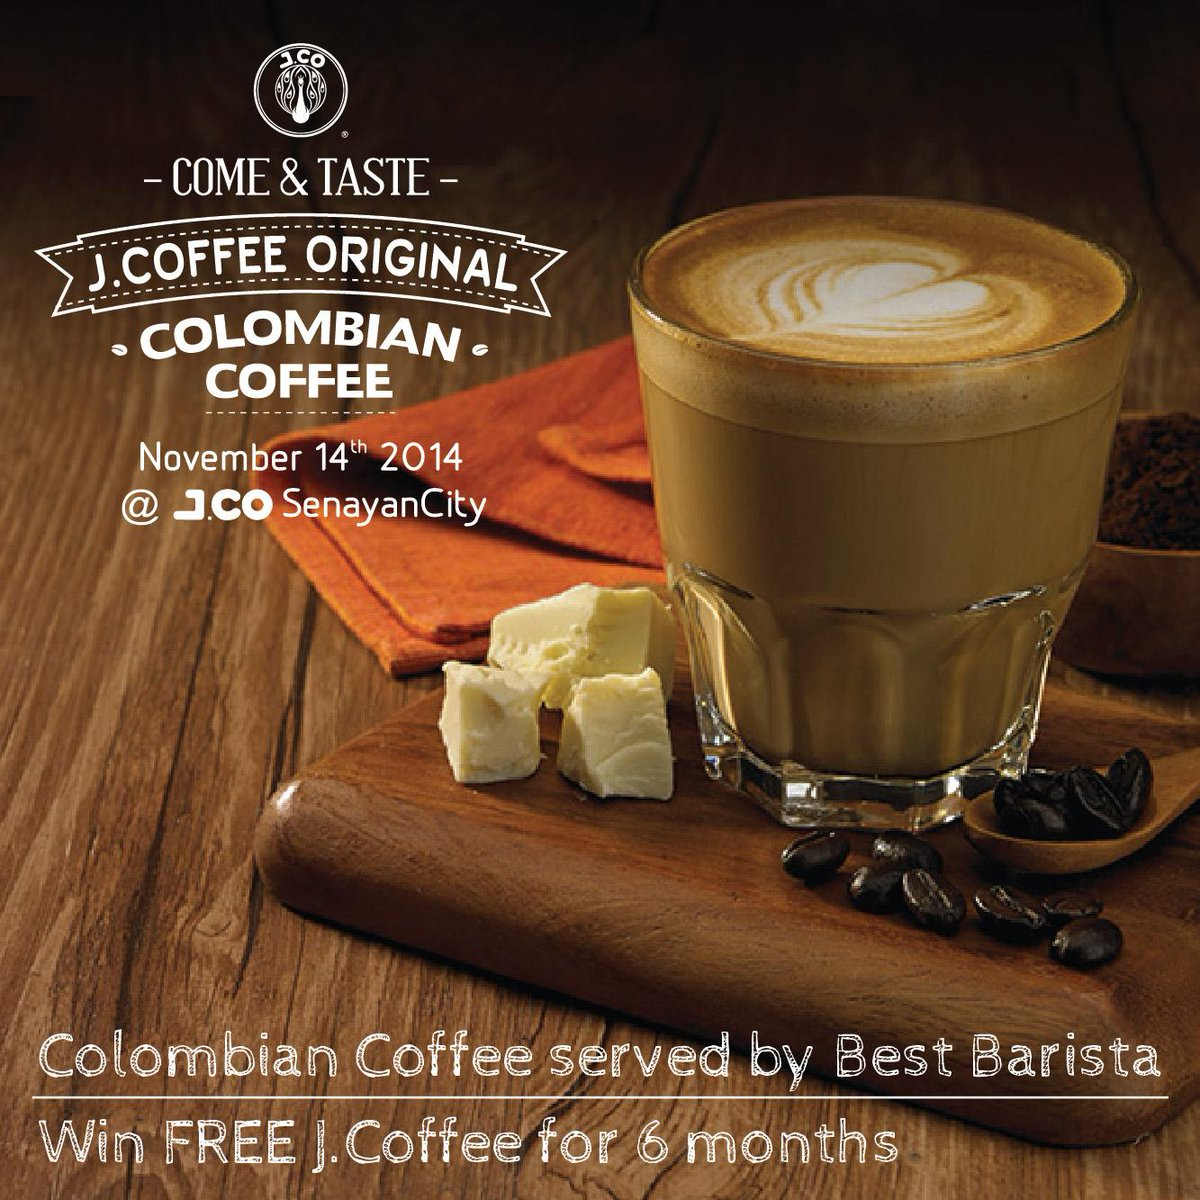 RETWEET this post and have a chance to win FREE http://t.co/44hBNcXTsM for 6 months! #JCoffee http://t.co/SDMkDoiatL